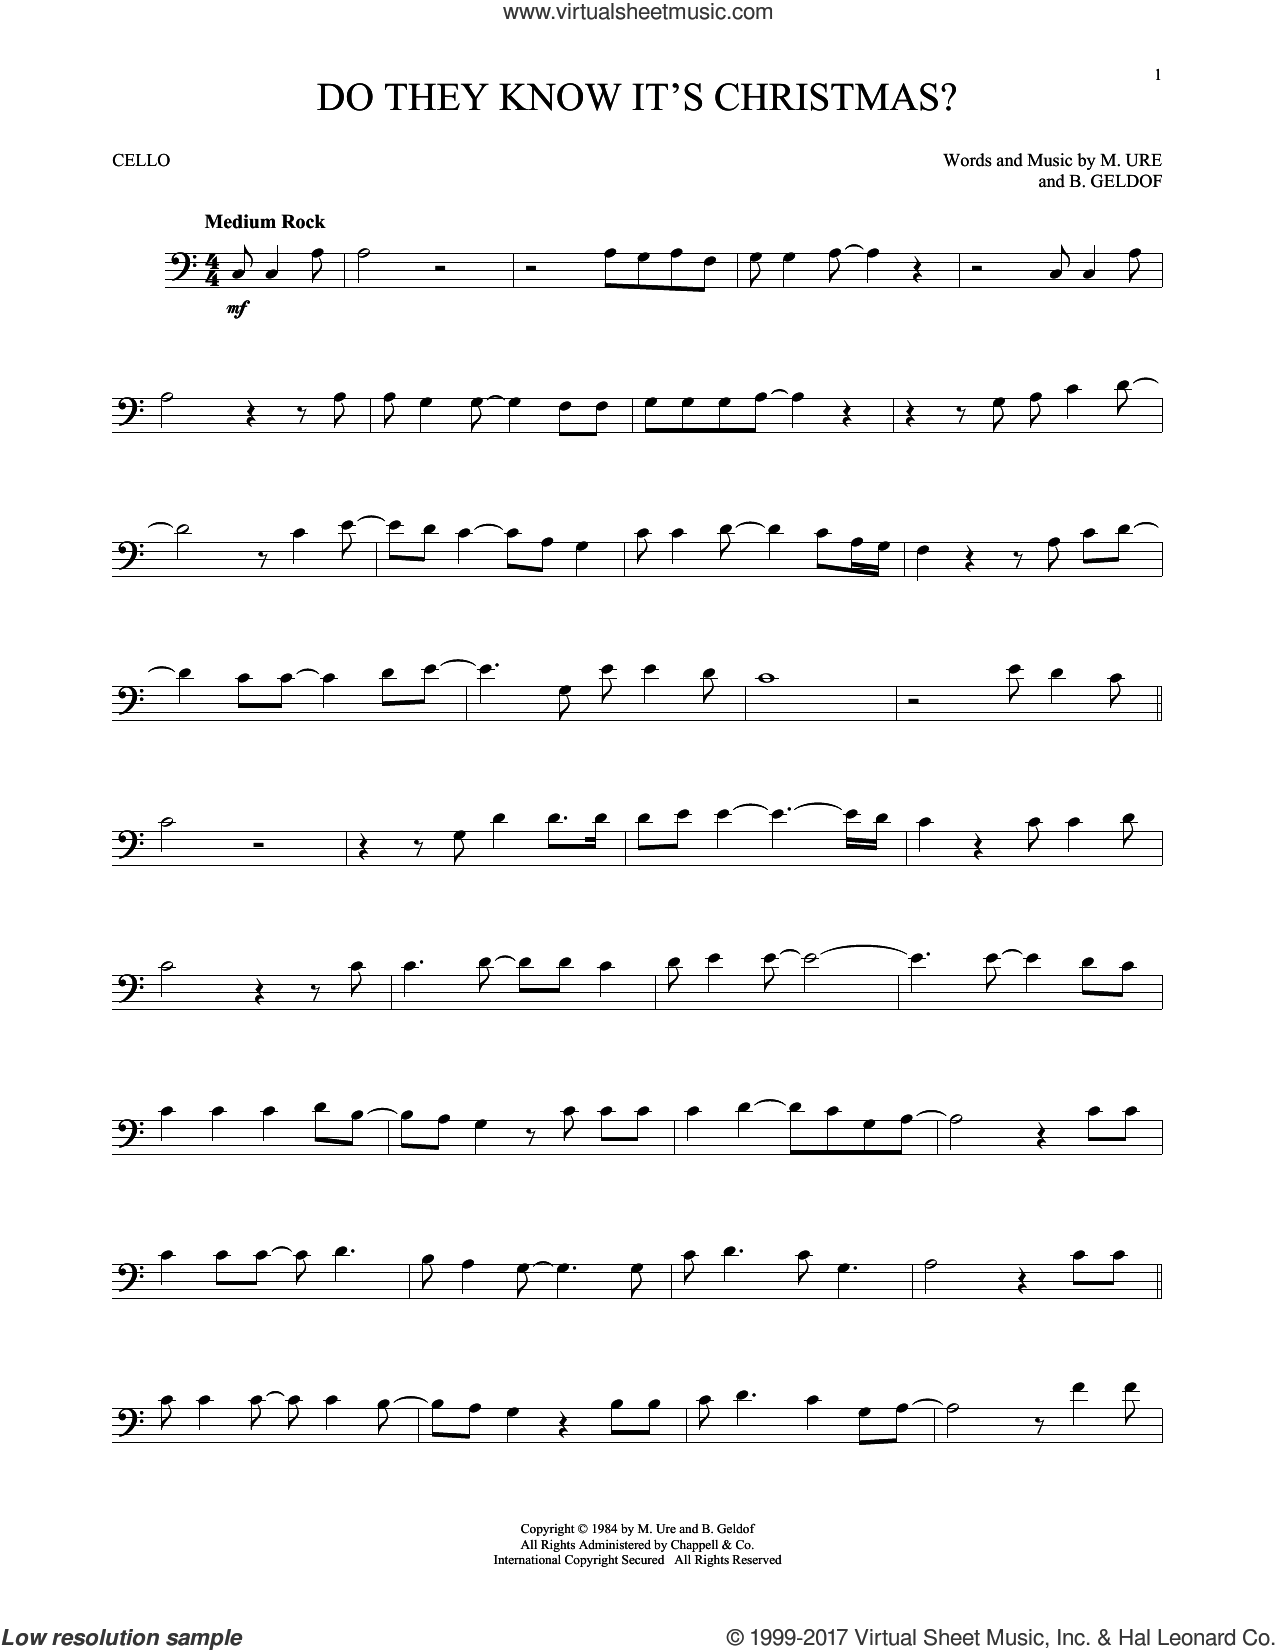 Do They Know It's Christmas? (Feed The World) sheet music for cello solo by Midge Ure and Bob Geldof, intermediate skill level